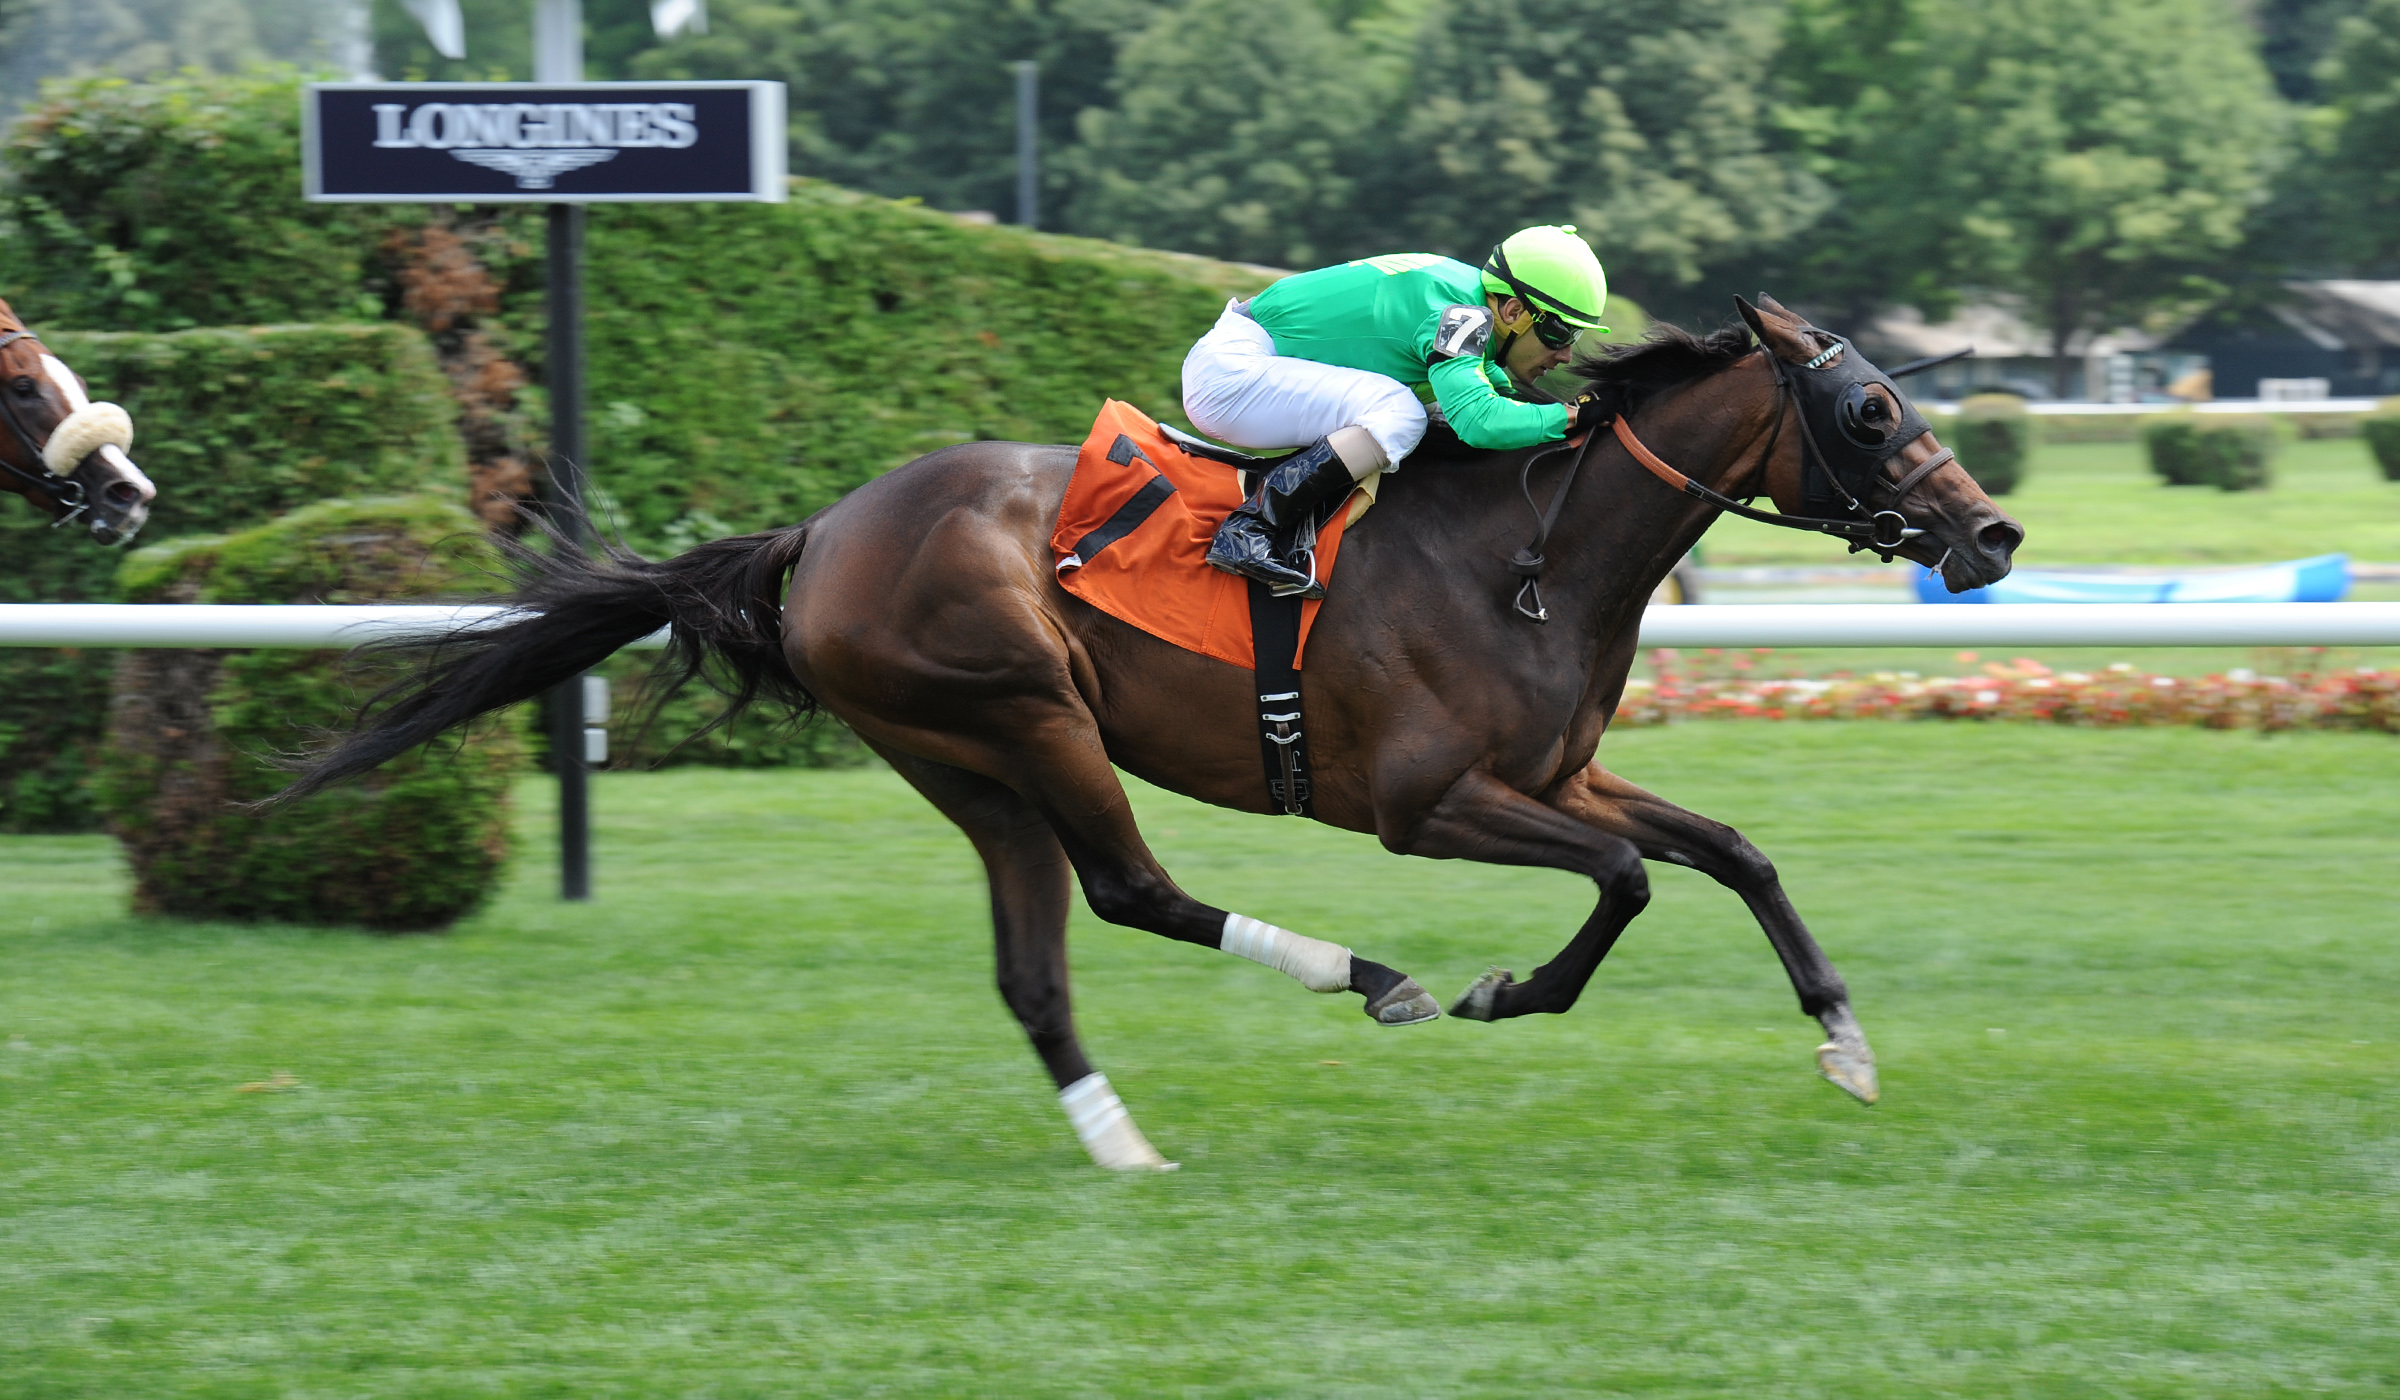 Khaleesi kat - win at saratoga race track on opening day (july 2015)